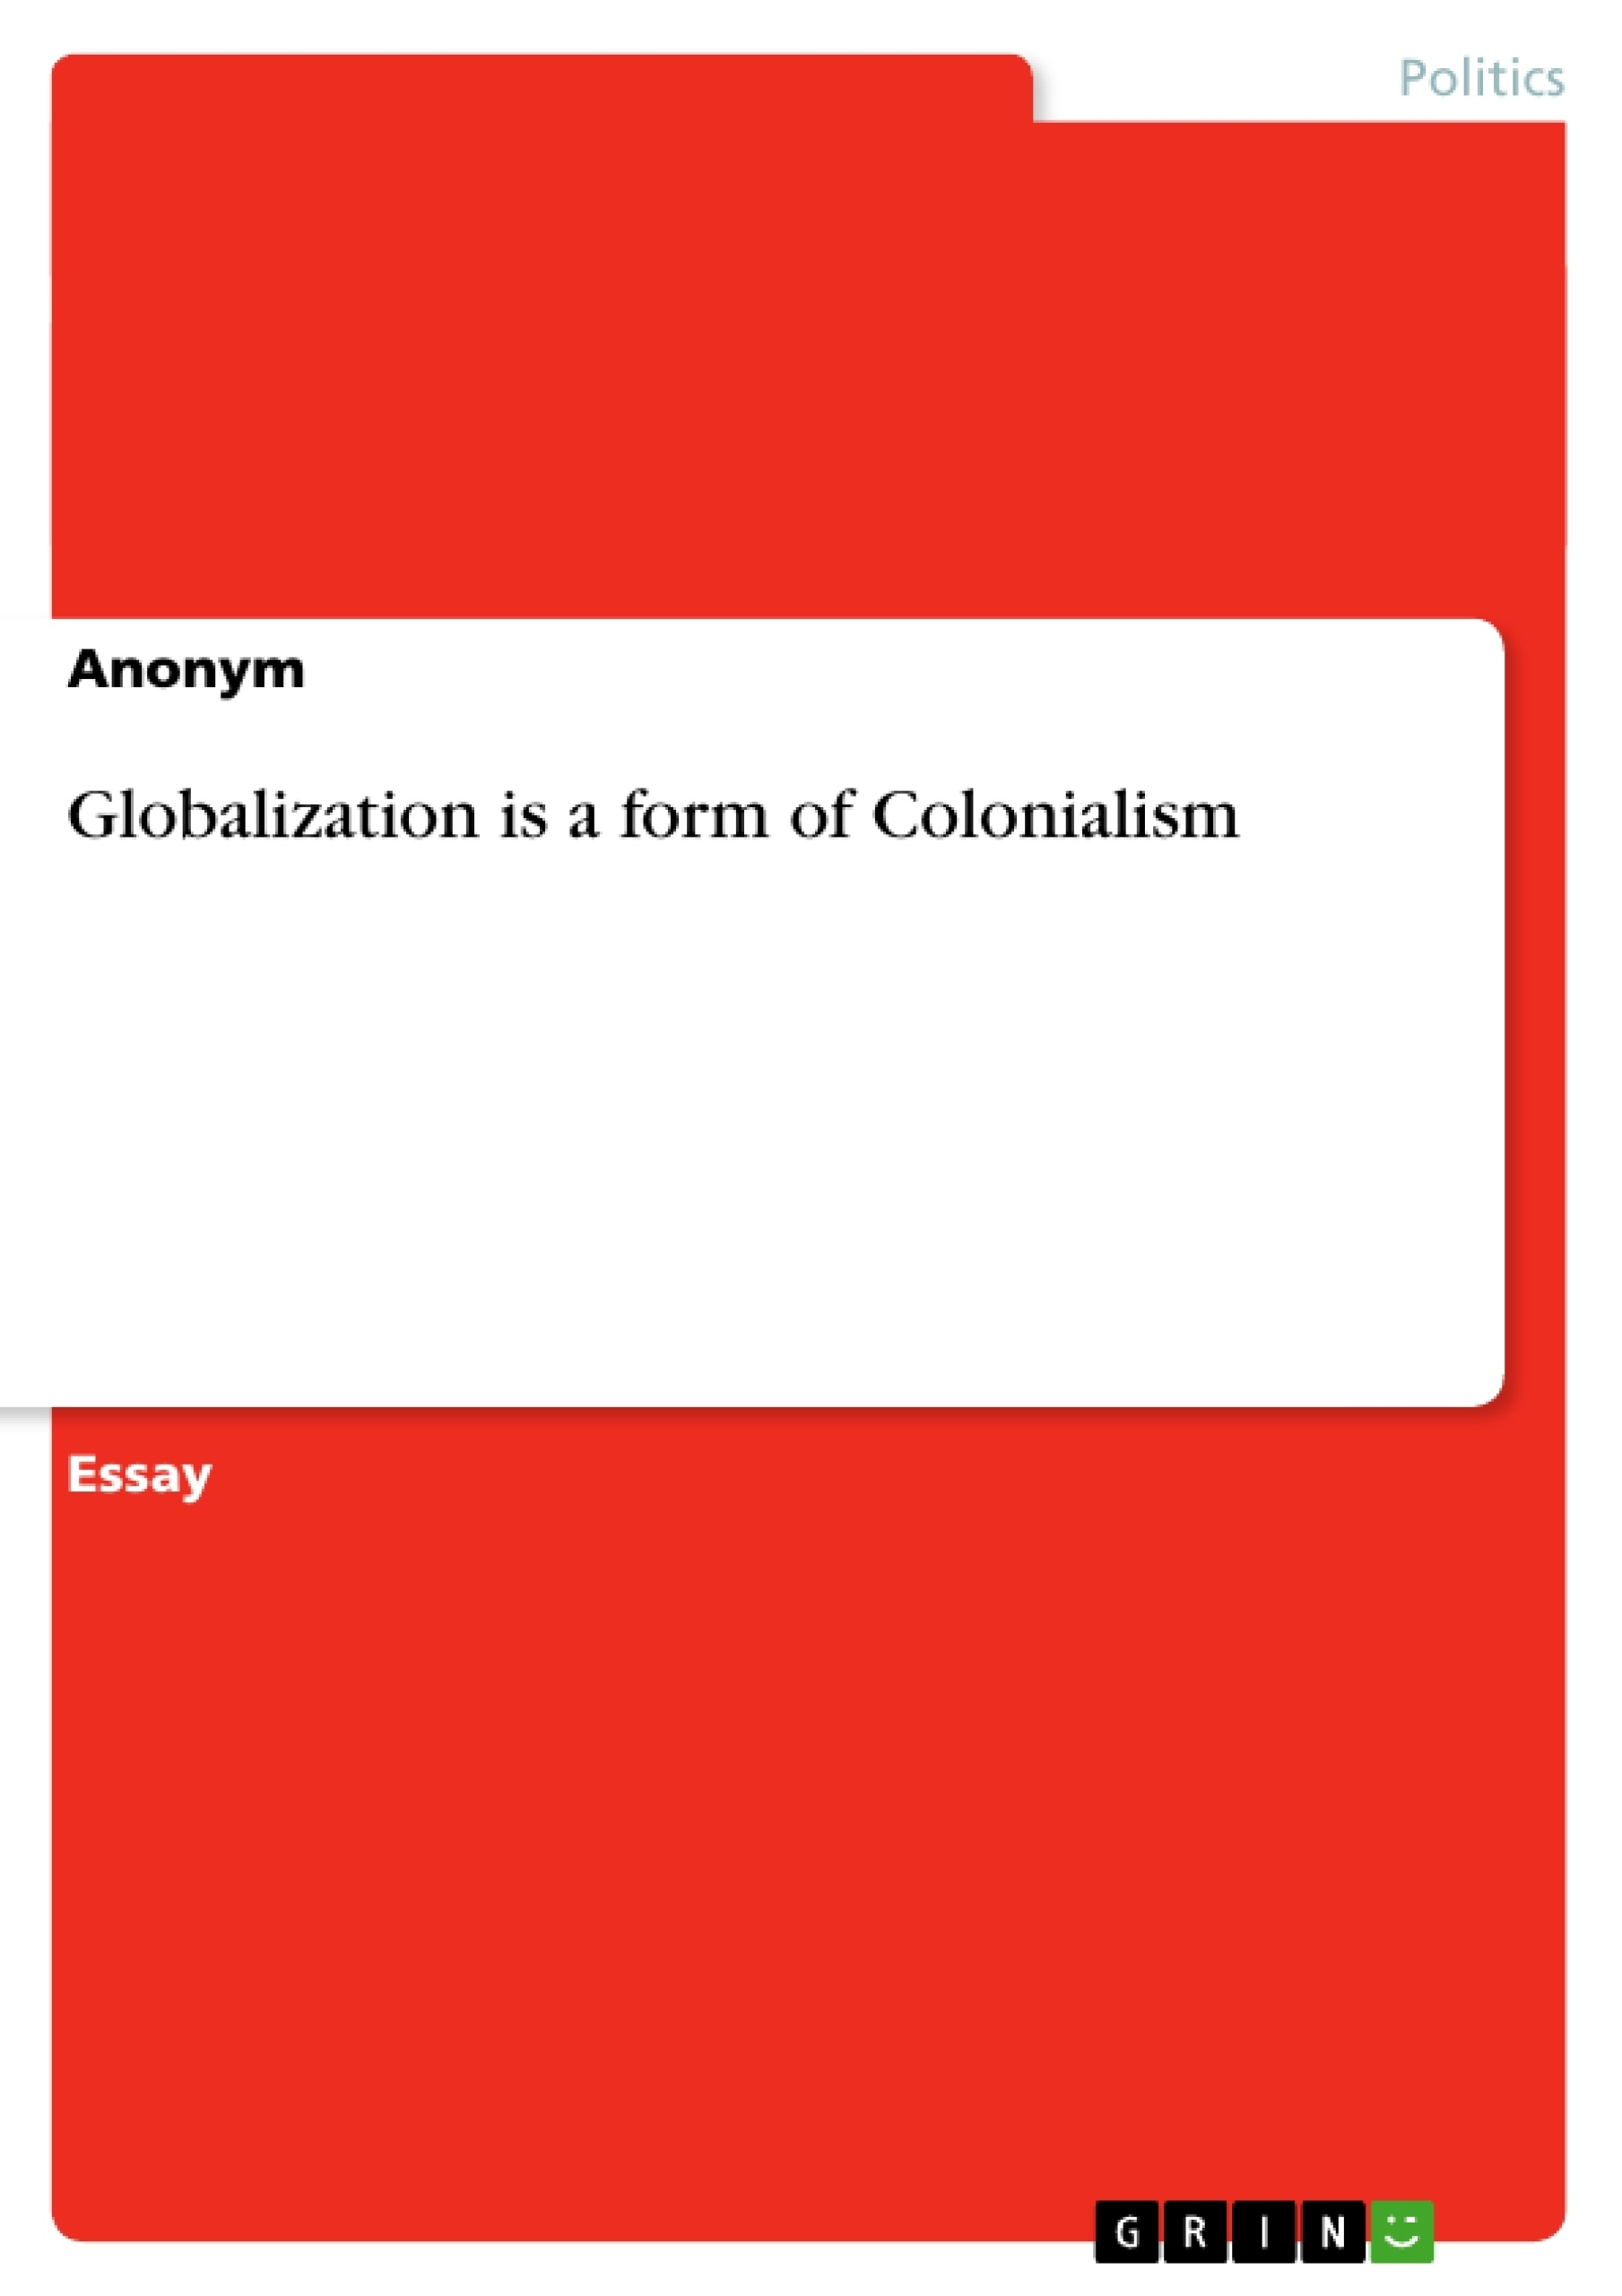 globalization is a form of colonialism publish your master s globalization is a form of colonialism publish your master s thesis bachelor s thesis essay or term paper